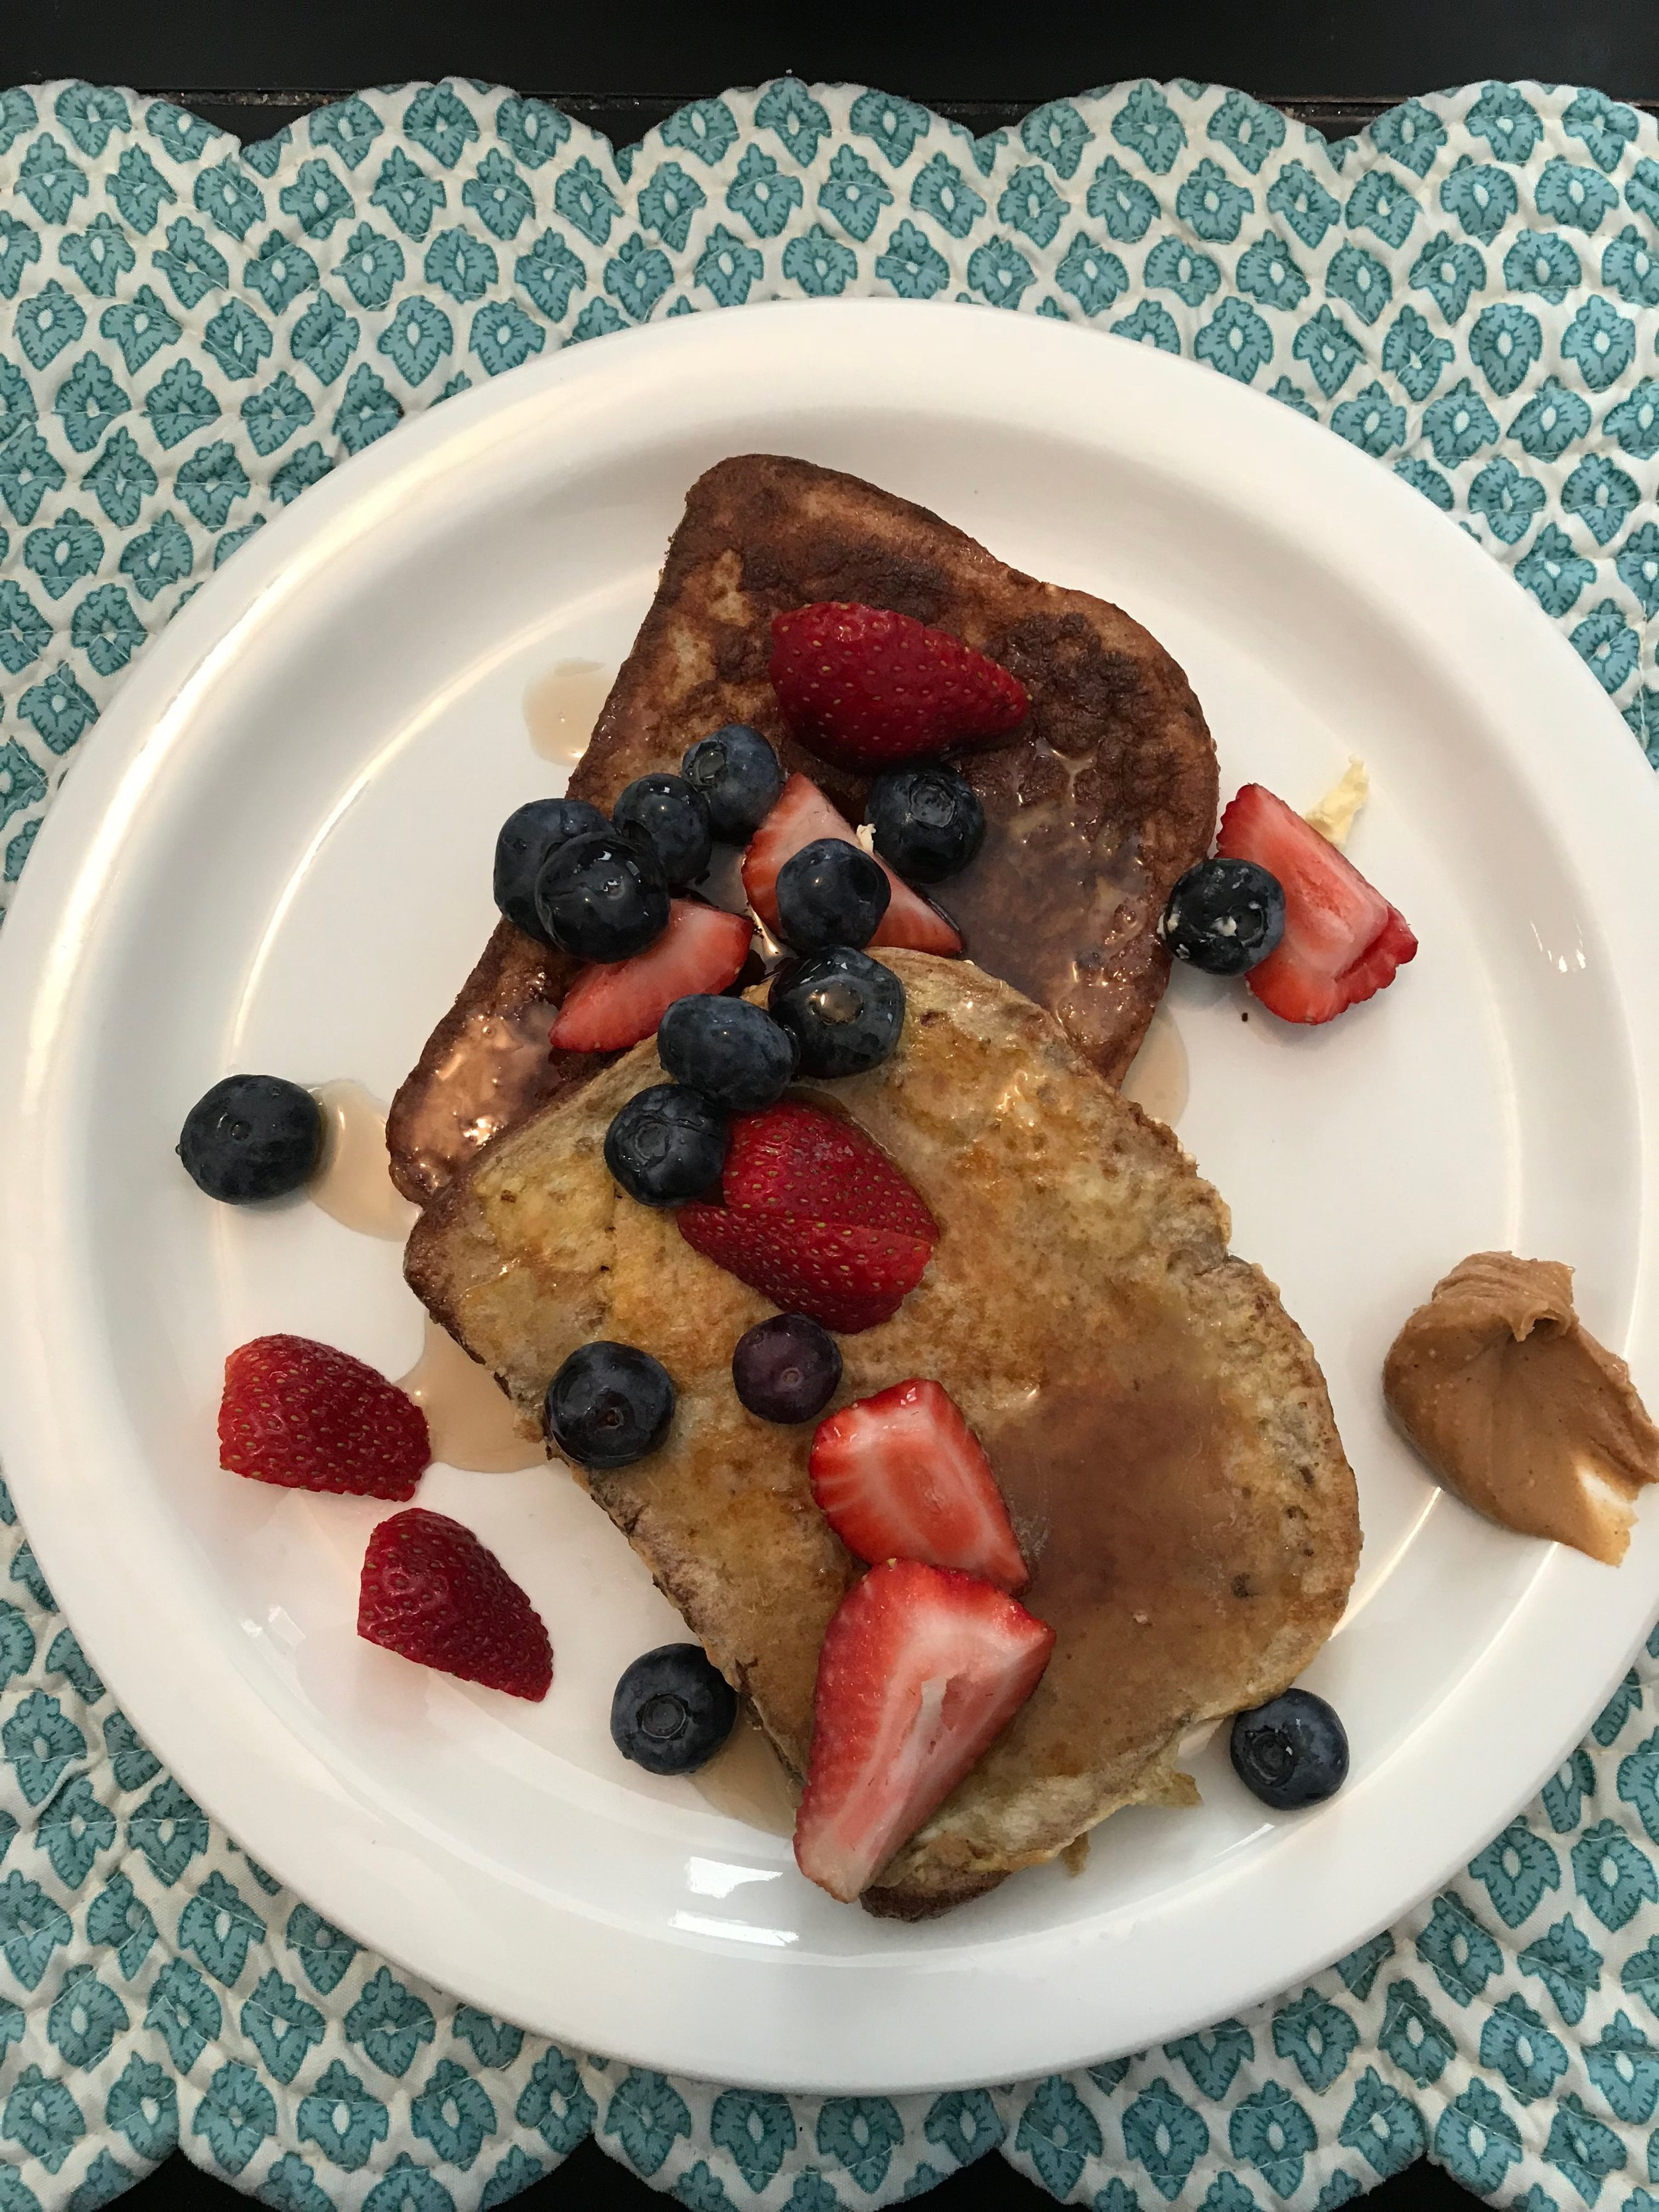 French toast with peanut butter, syrup and berries